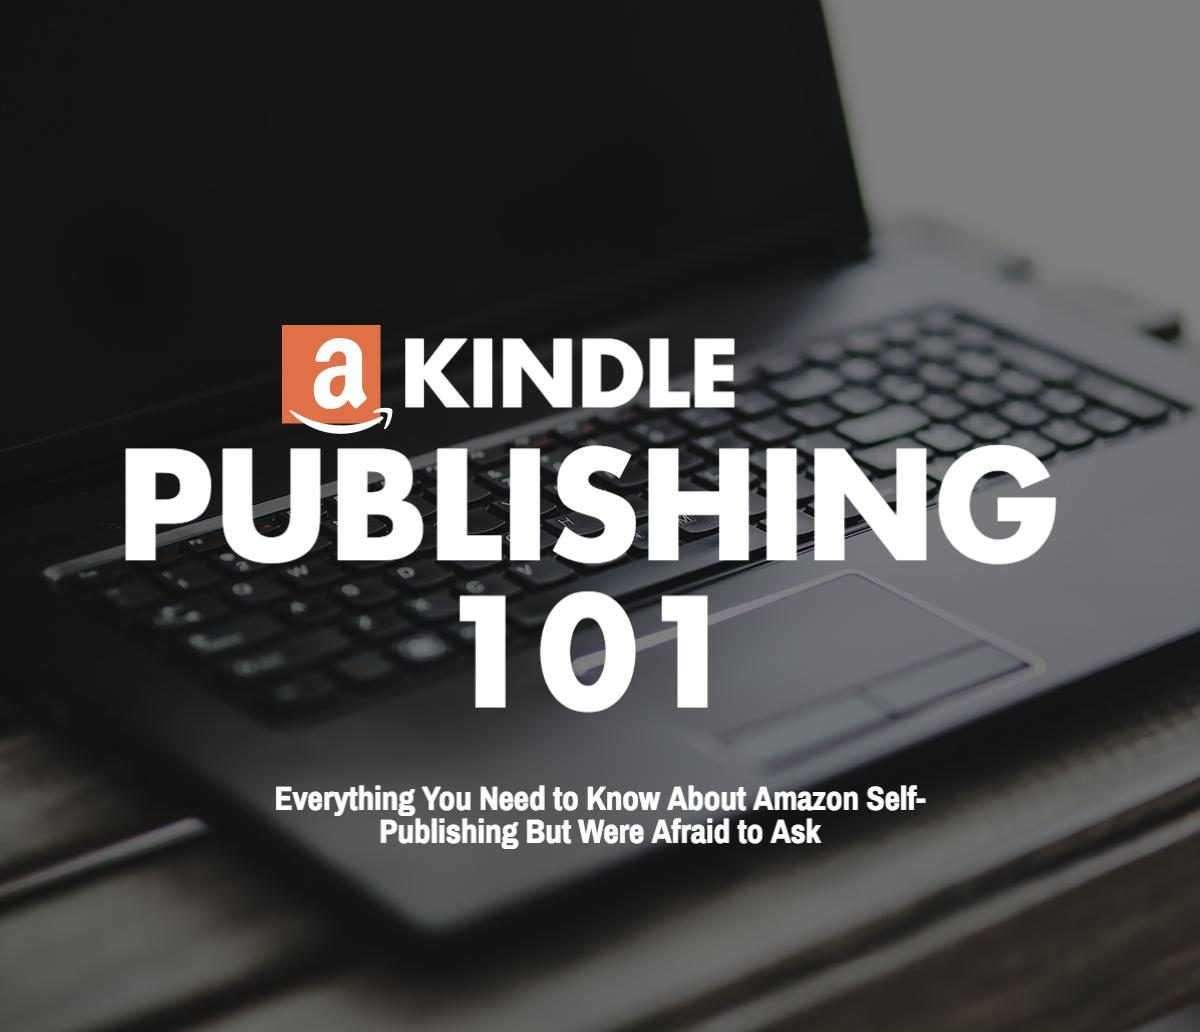 Kindle Publishing 101